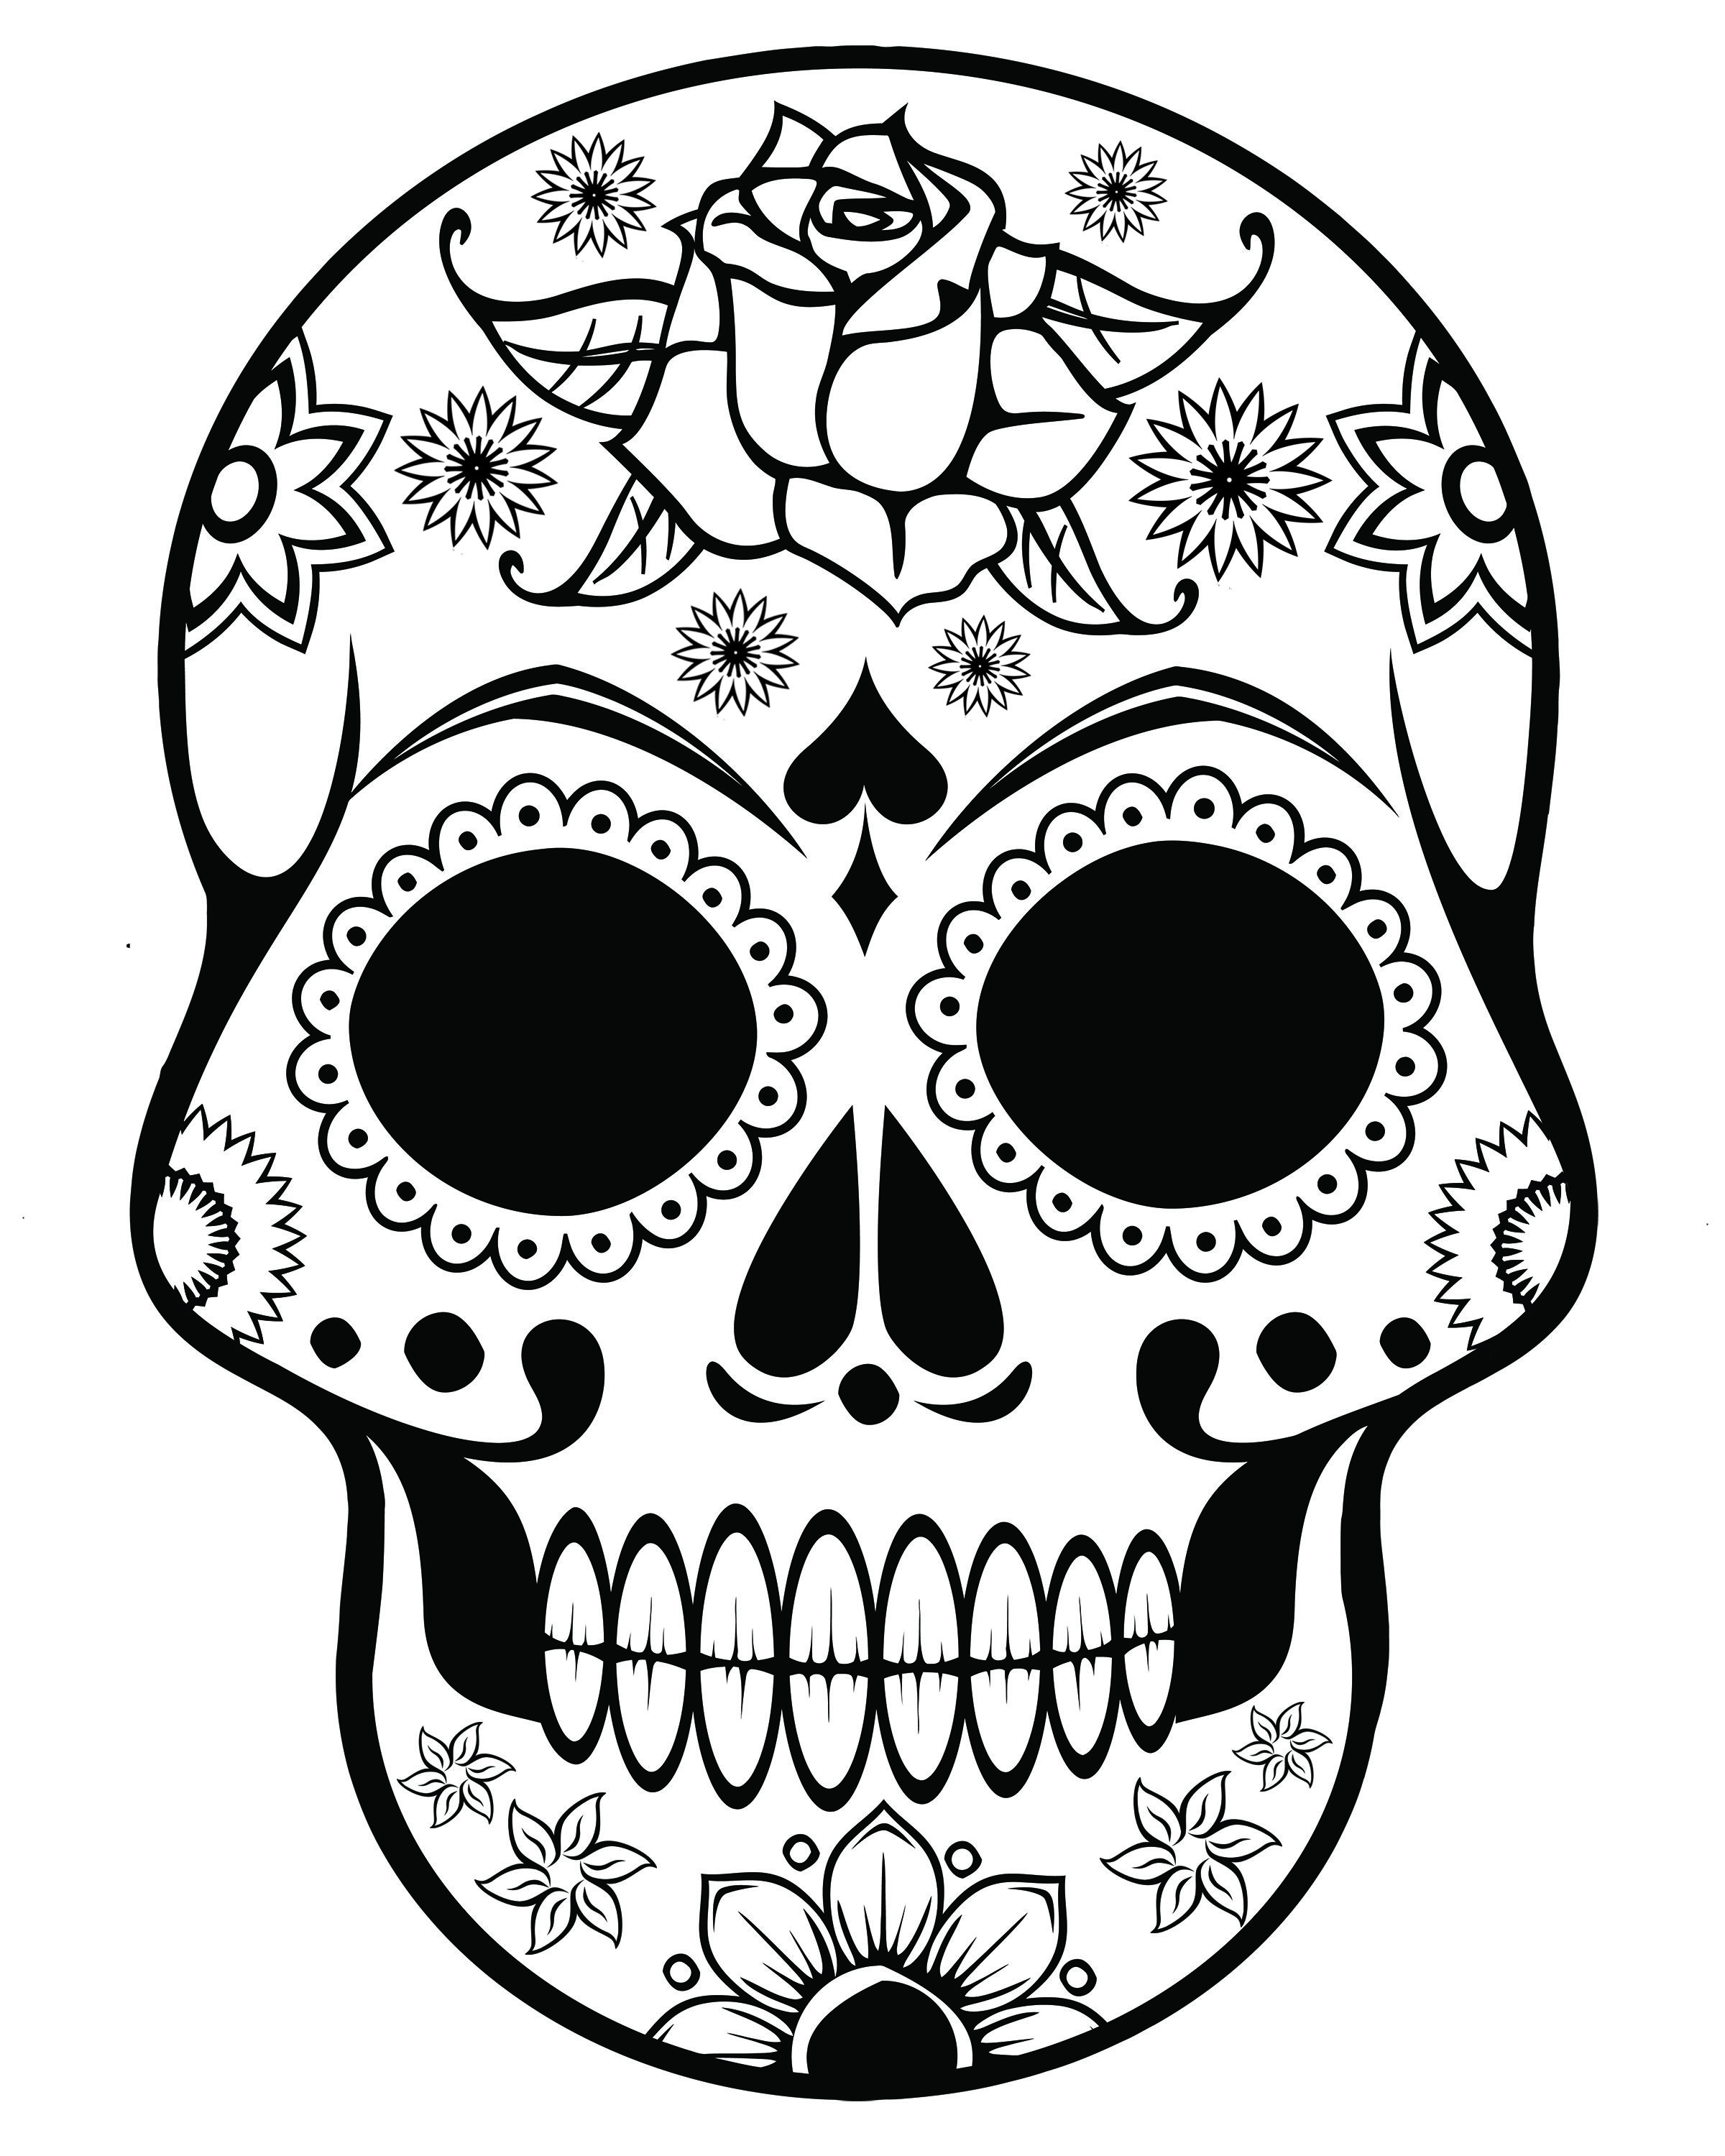 Free Printable Halloween Coloring Pages For Adults Sugar Skull With Ornate Flowers Skull Coloring Pages Skull Stencil Skull Template